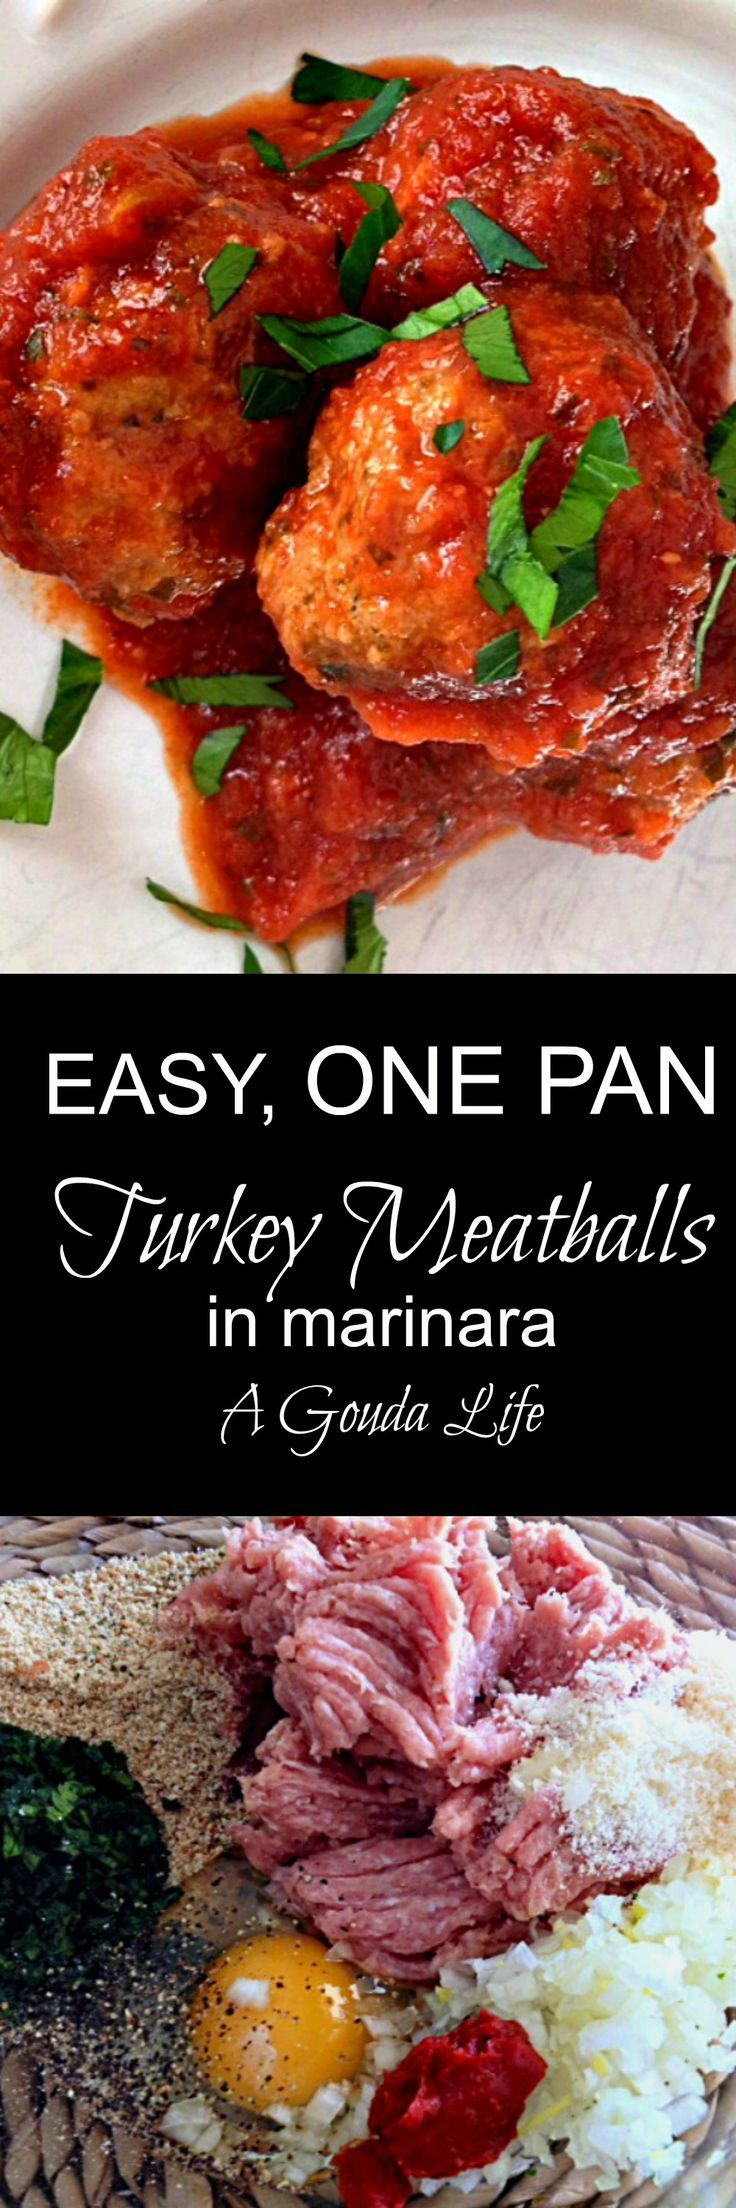 Healthy update on a classic Healthy Turkey Meatballs simmered in an easy any night marinara. Serve over whole grain pasta.